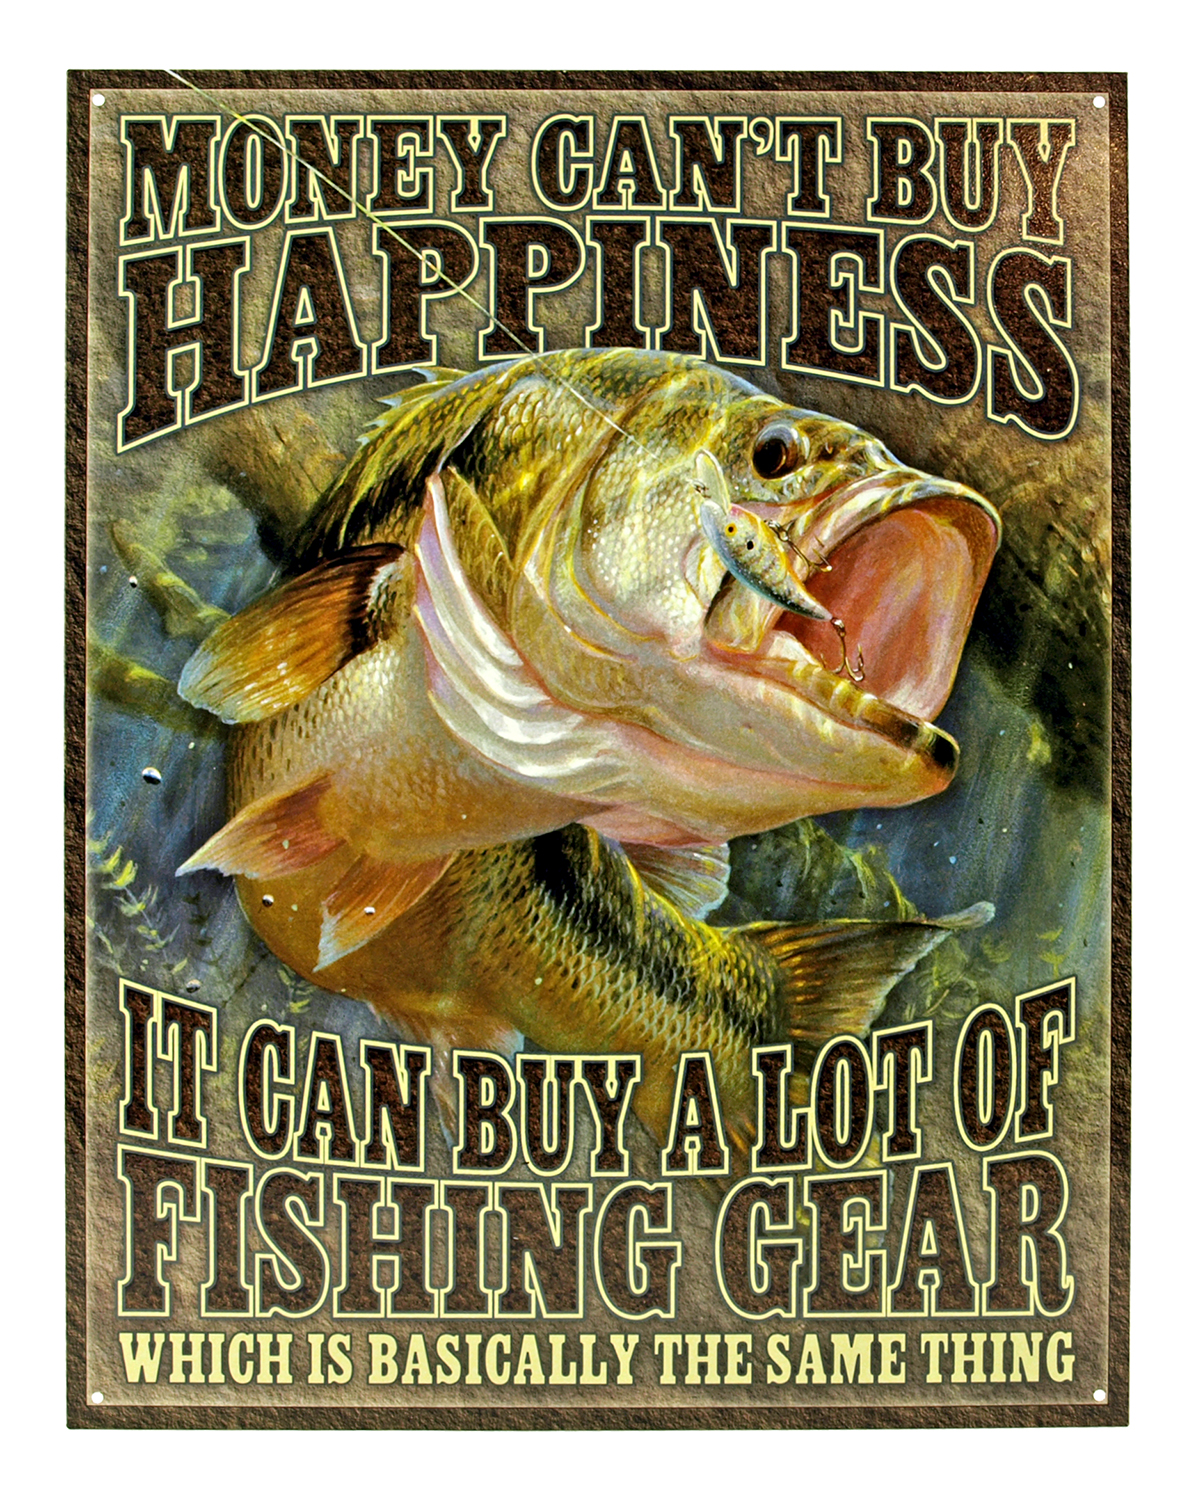 Money Can't Buy Happiness, It Can Buy a lot of Fishing Gear - Fishing Metal Tin Sign